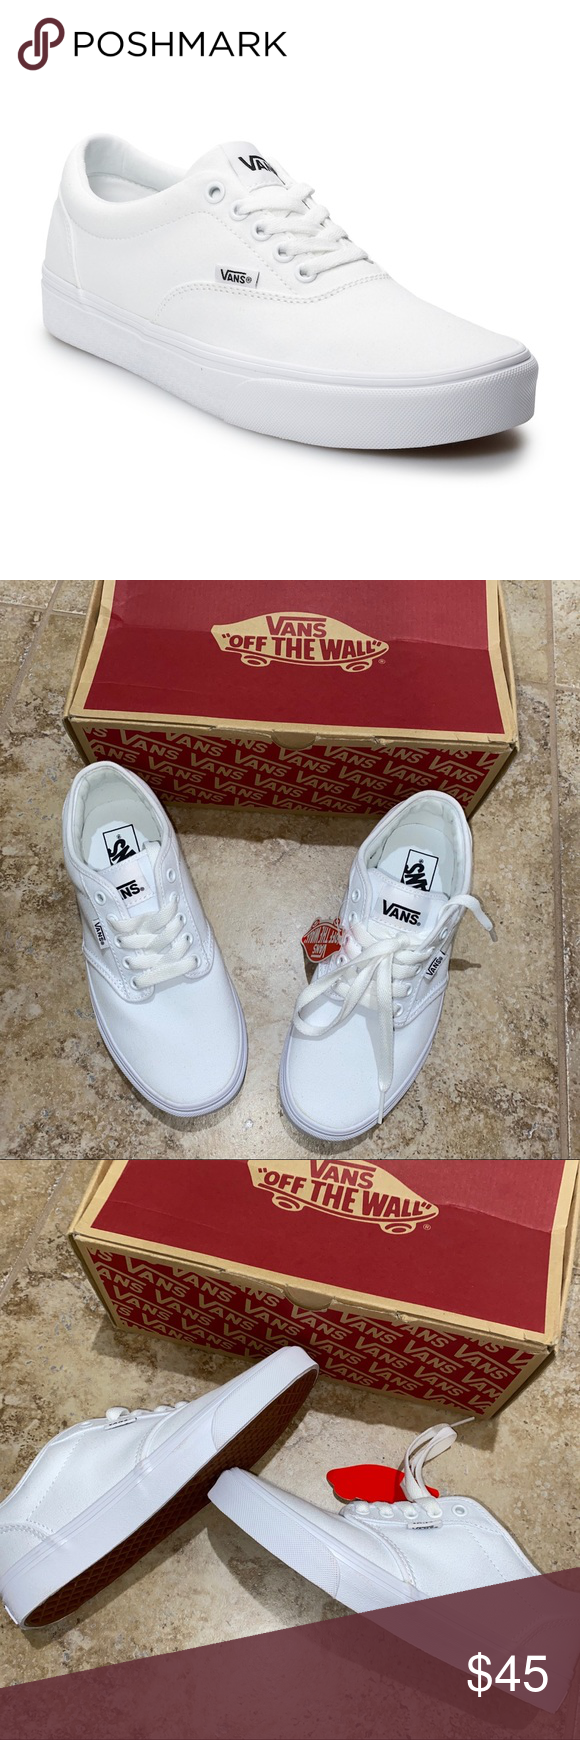 vans mens and womens size chart